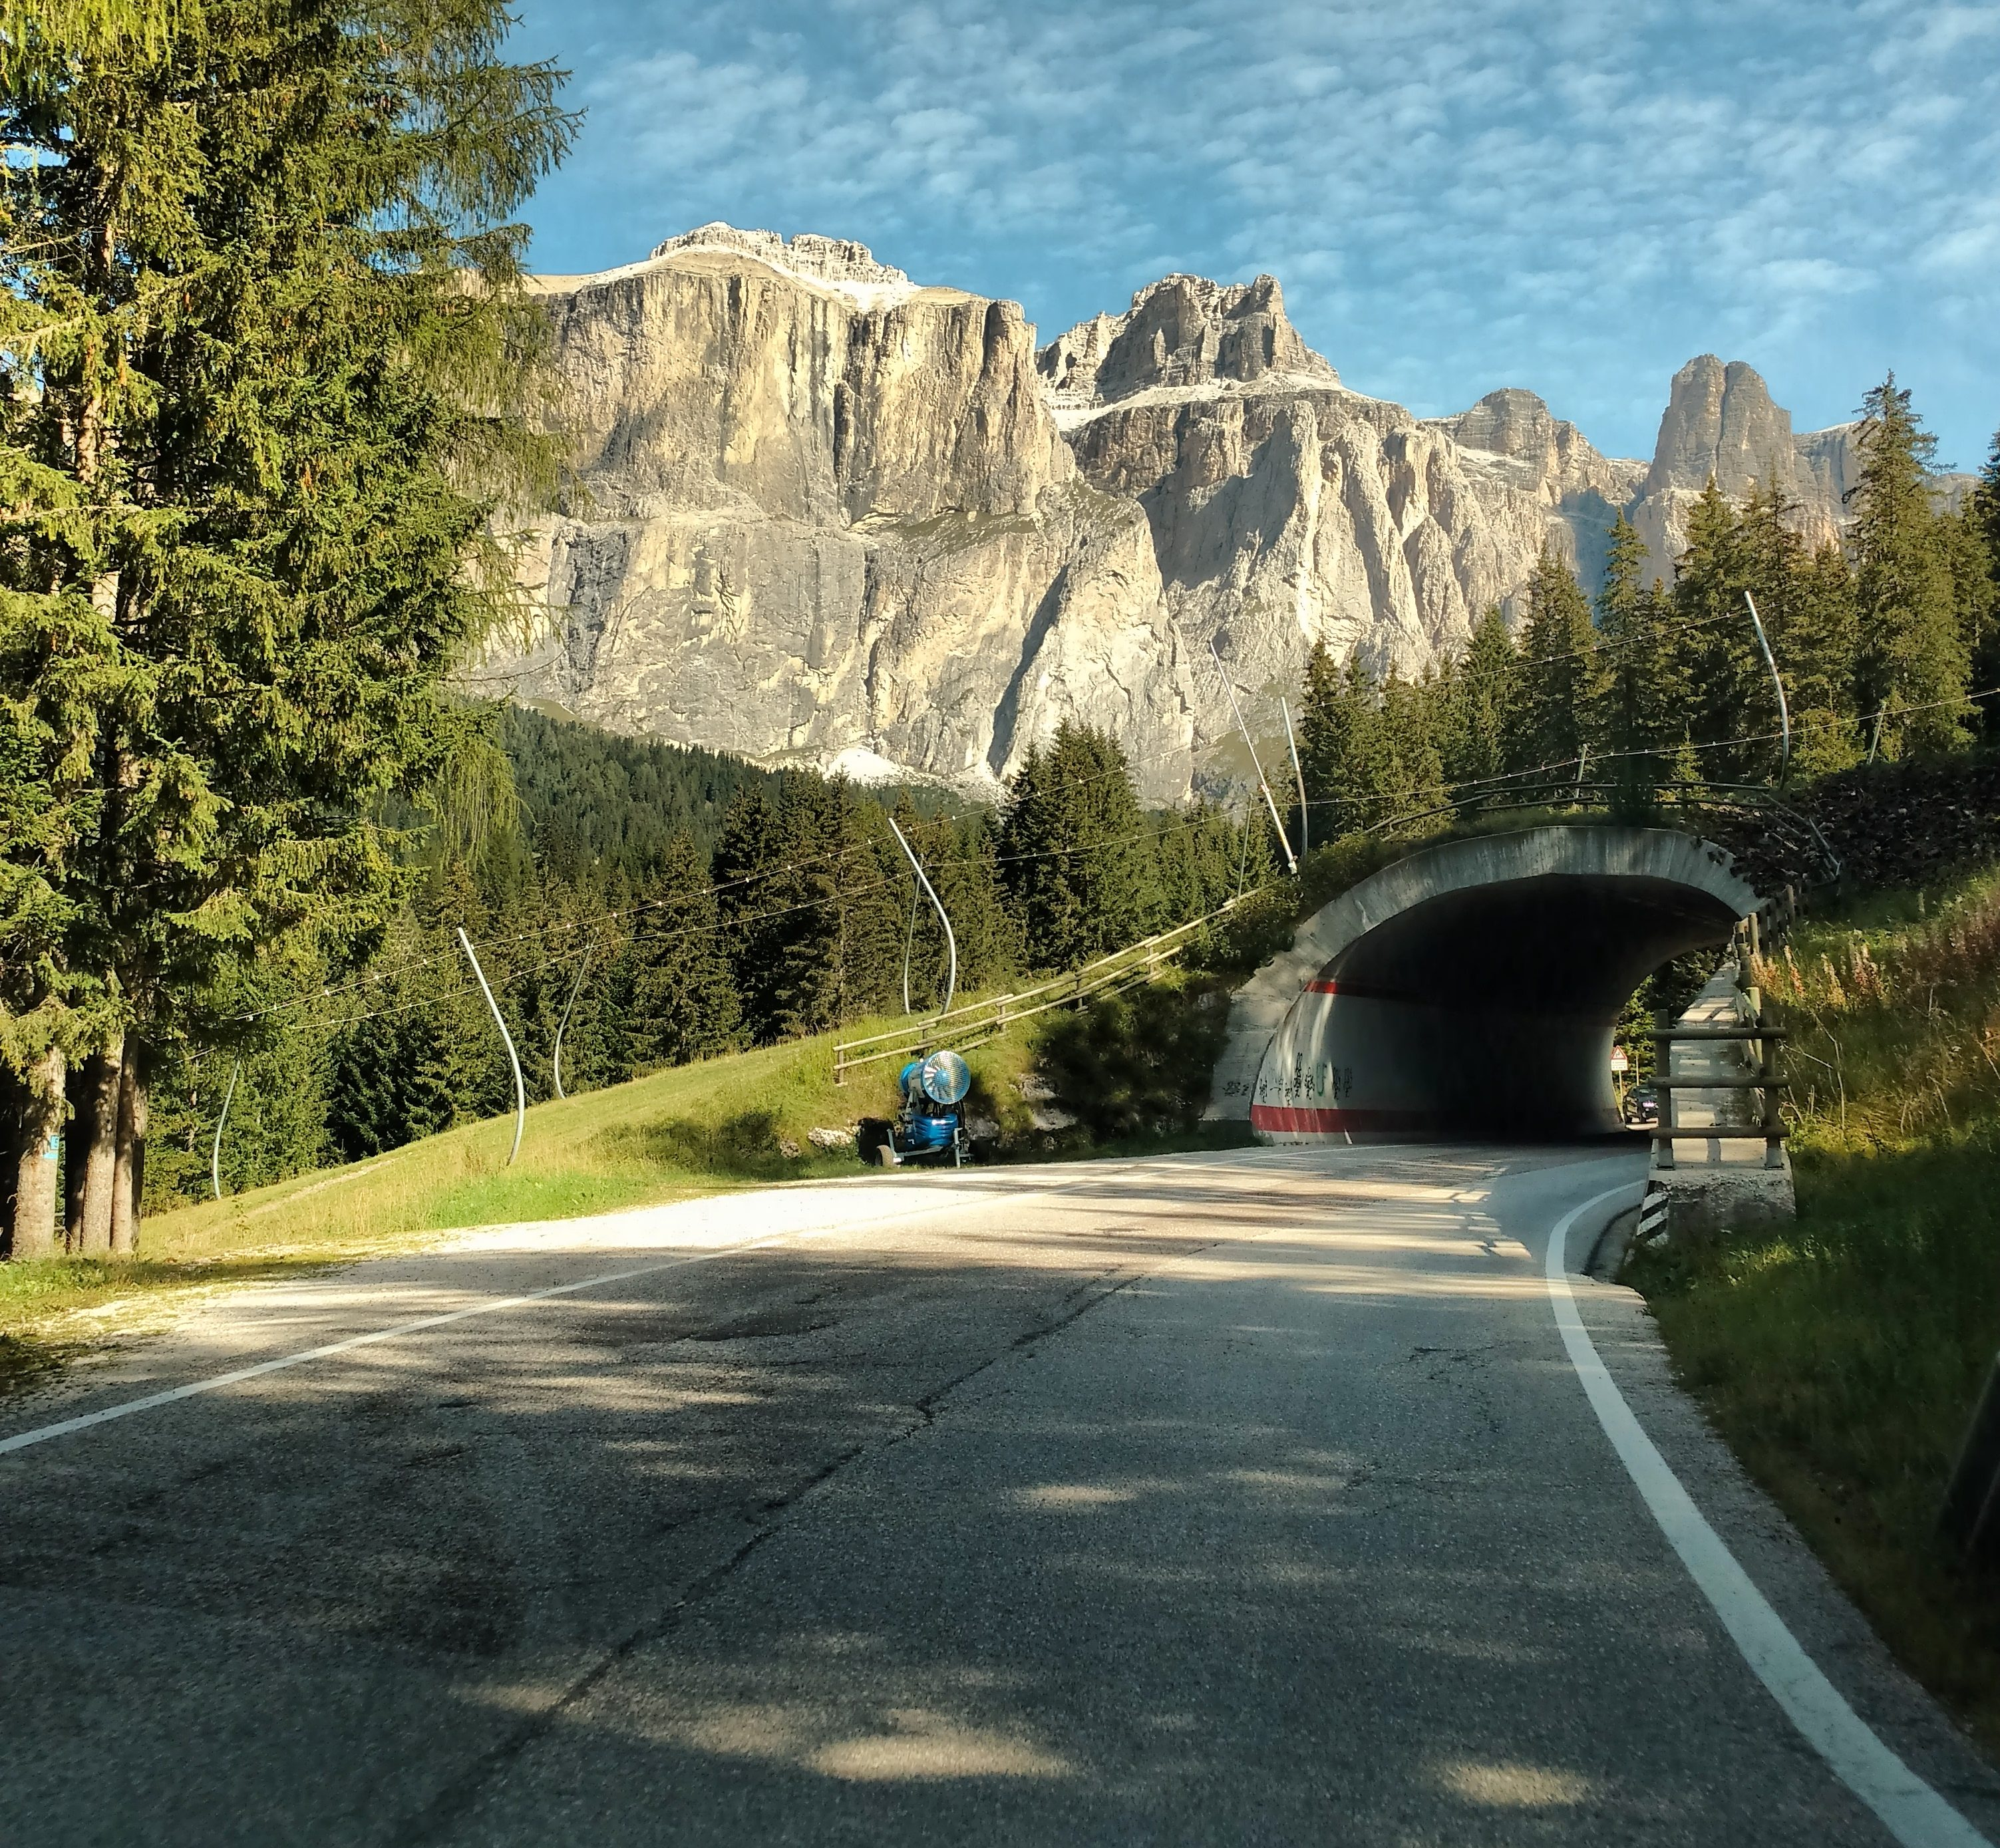 Driving the dolomite